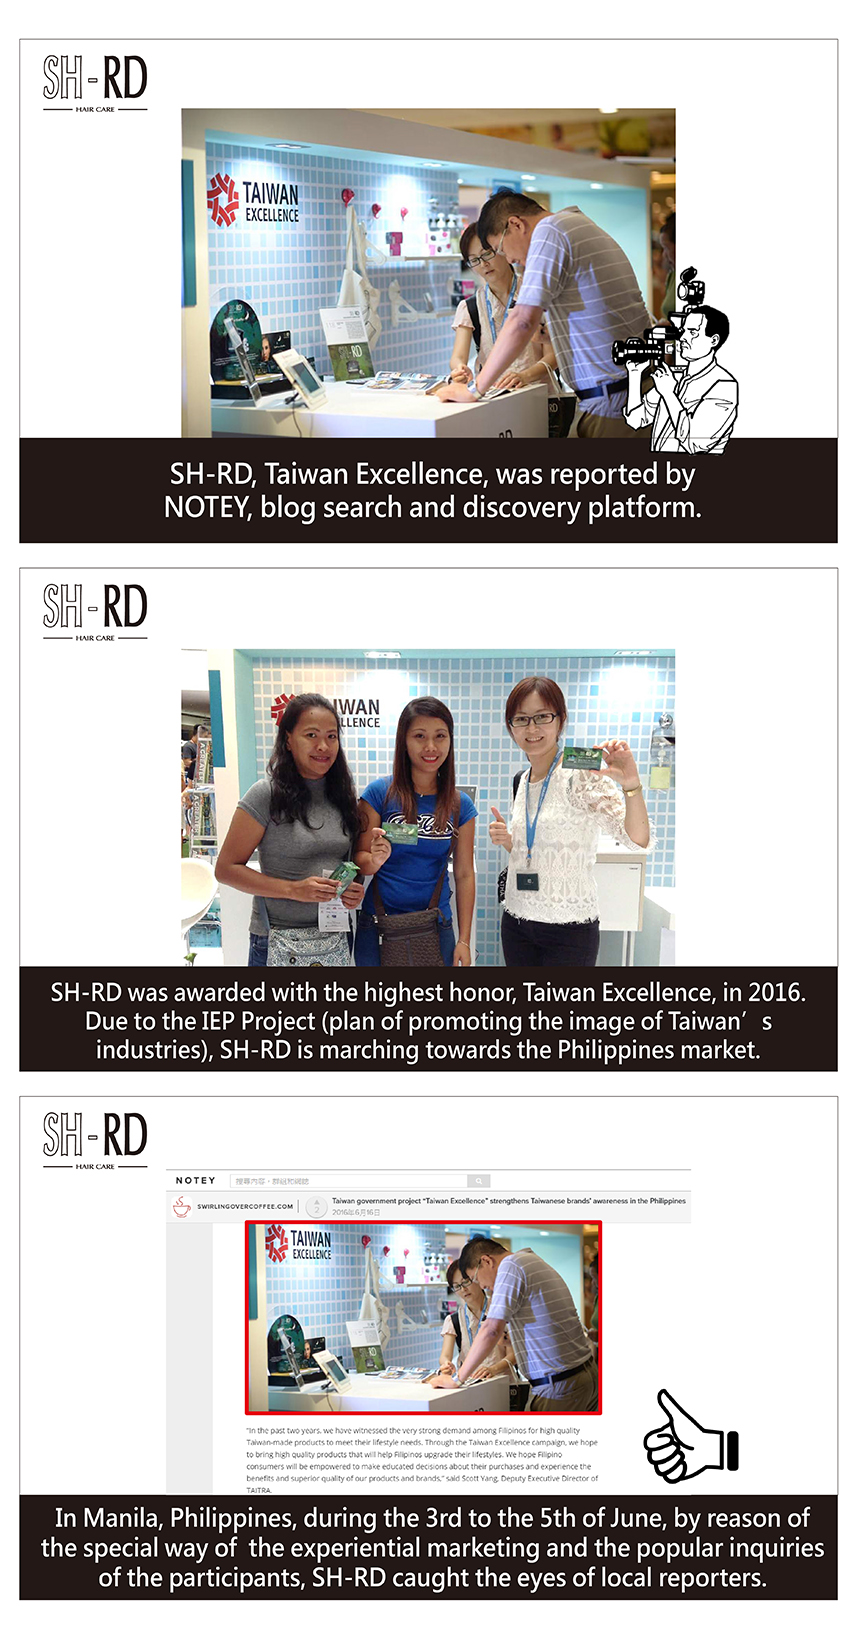 SH-RD,Taiwan Excellence,was reported by NOTEY,blog search and discovery platform